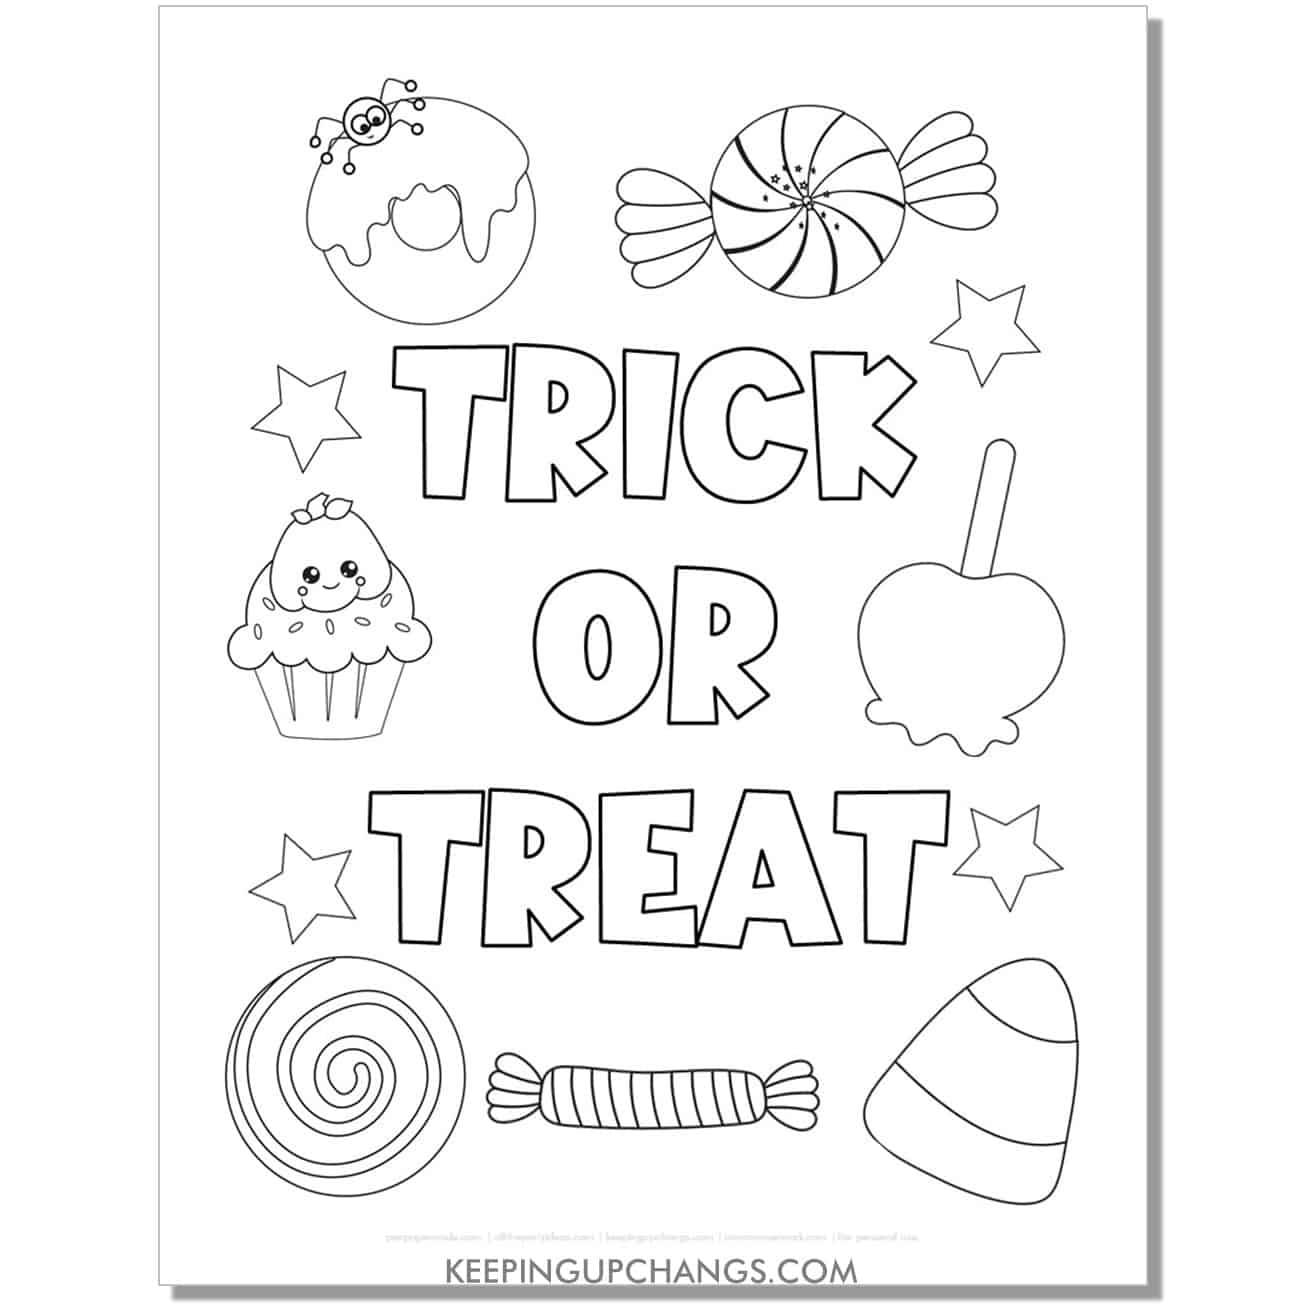 free trick or treat halloween coloring page with candy corn, spider, pumpkin.